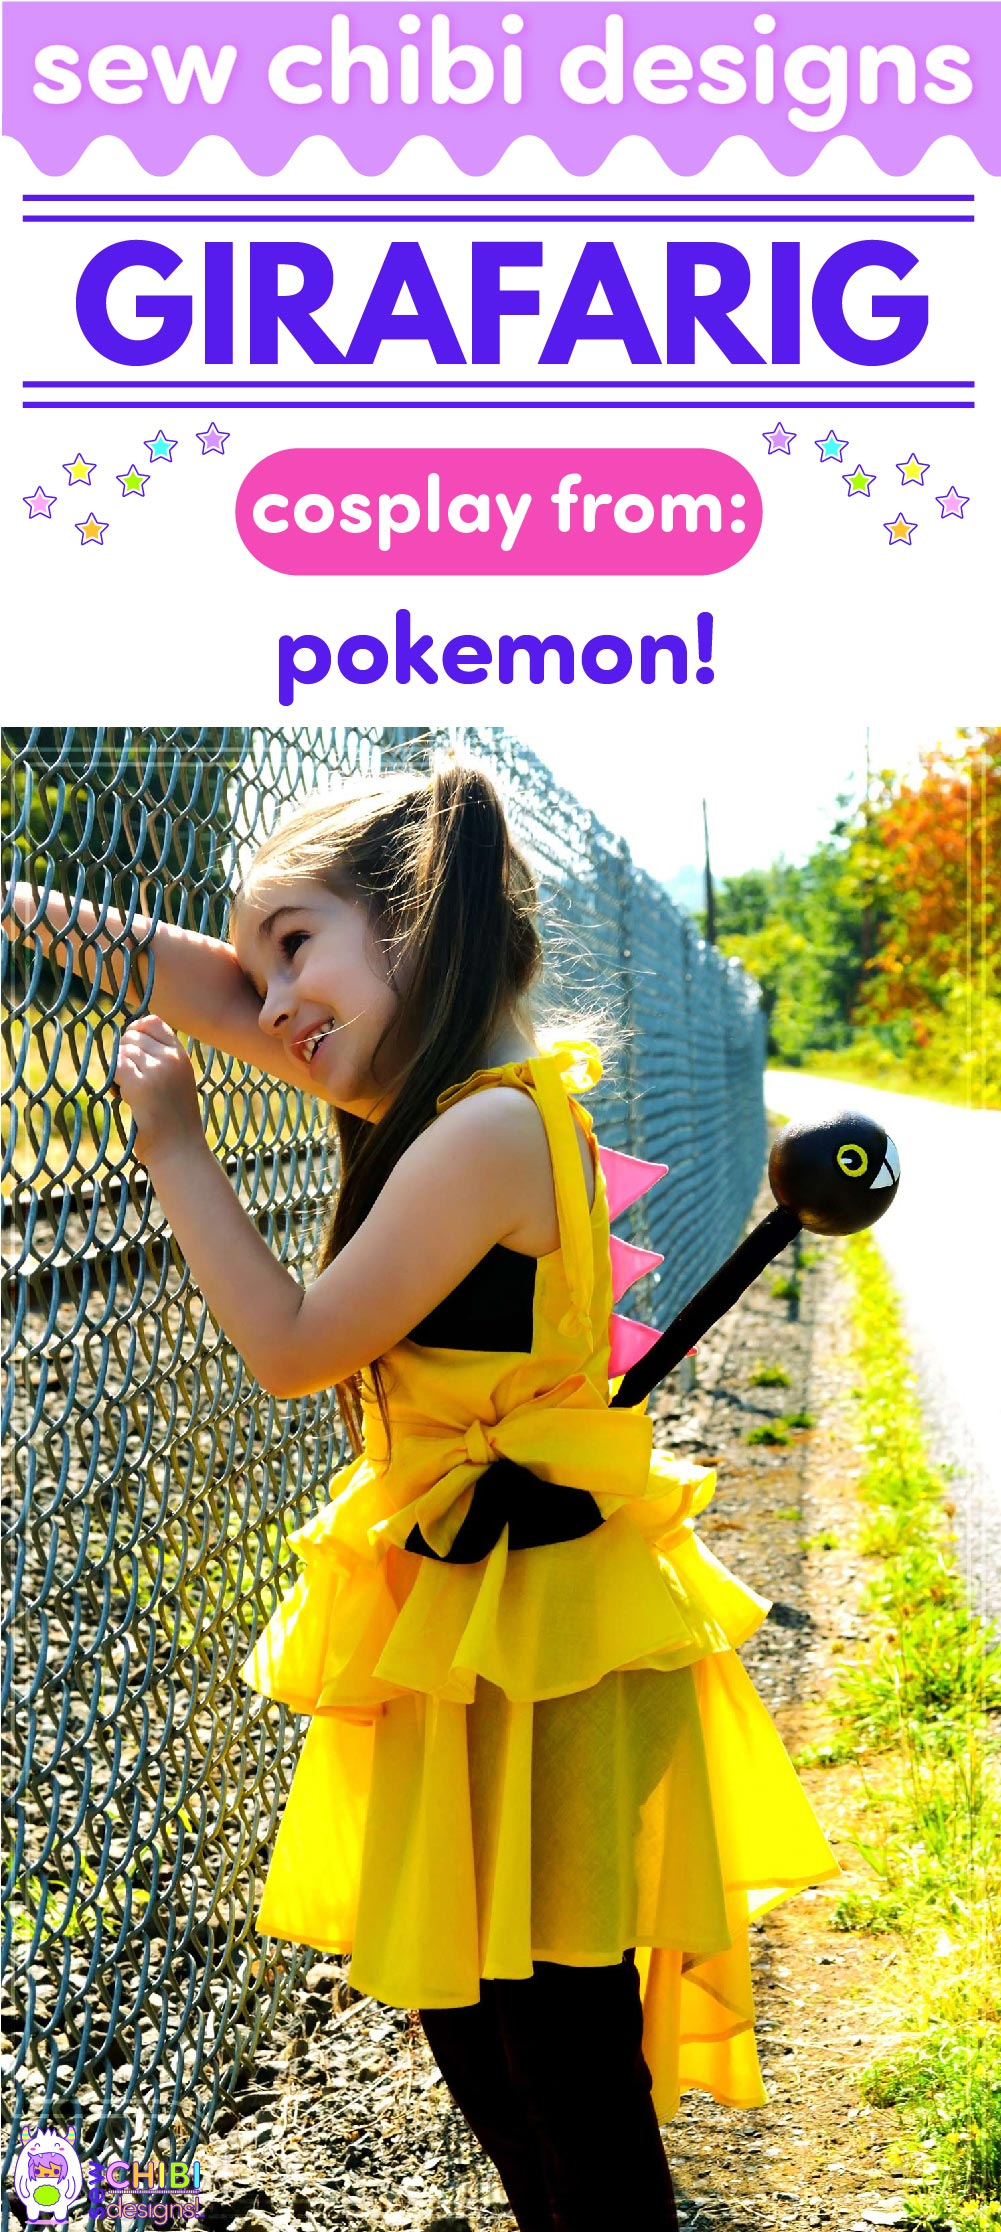 Girafarig chibi cosplay from Pokemon sewn by Sew Chibi Designs for Sew Geeky